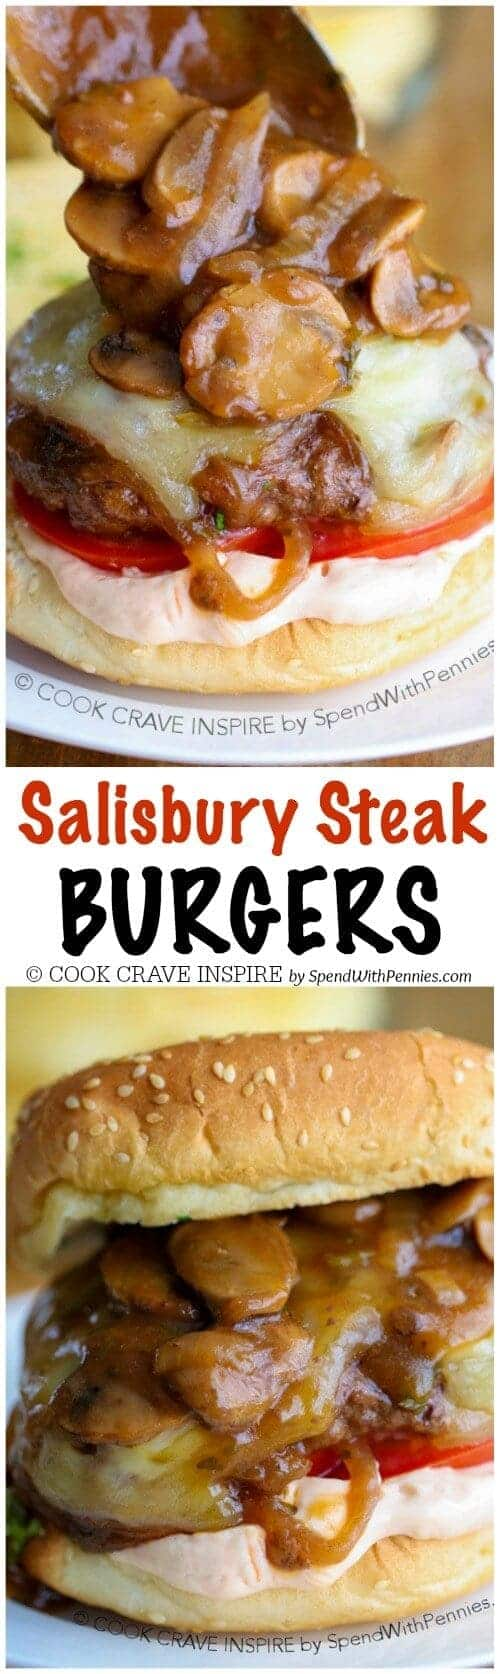 collage of Salisbury Steak Burgers